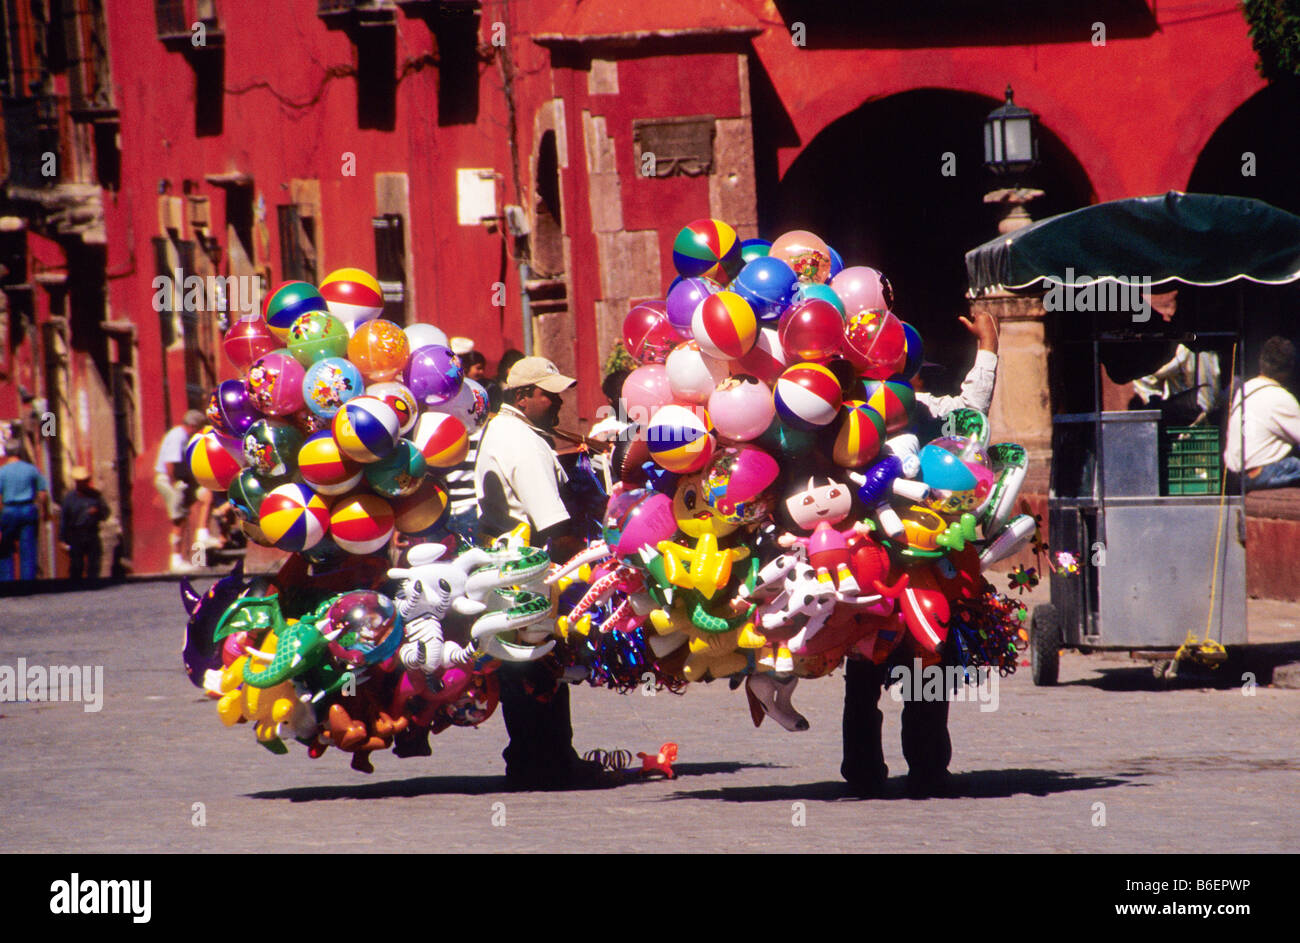 Vendors selling balloons in the Jardin, San Miguel de Allende, Mexico - Stock Image